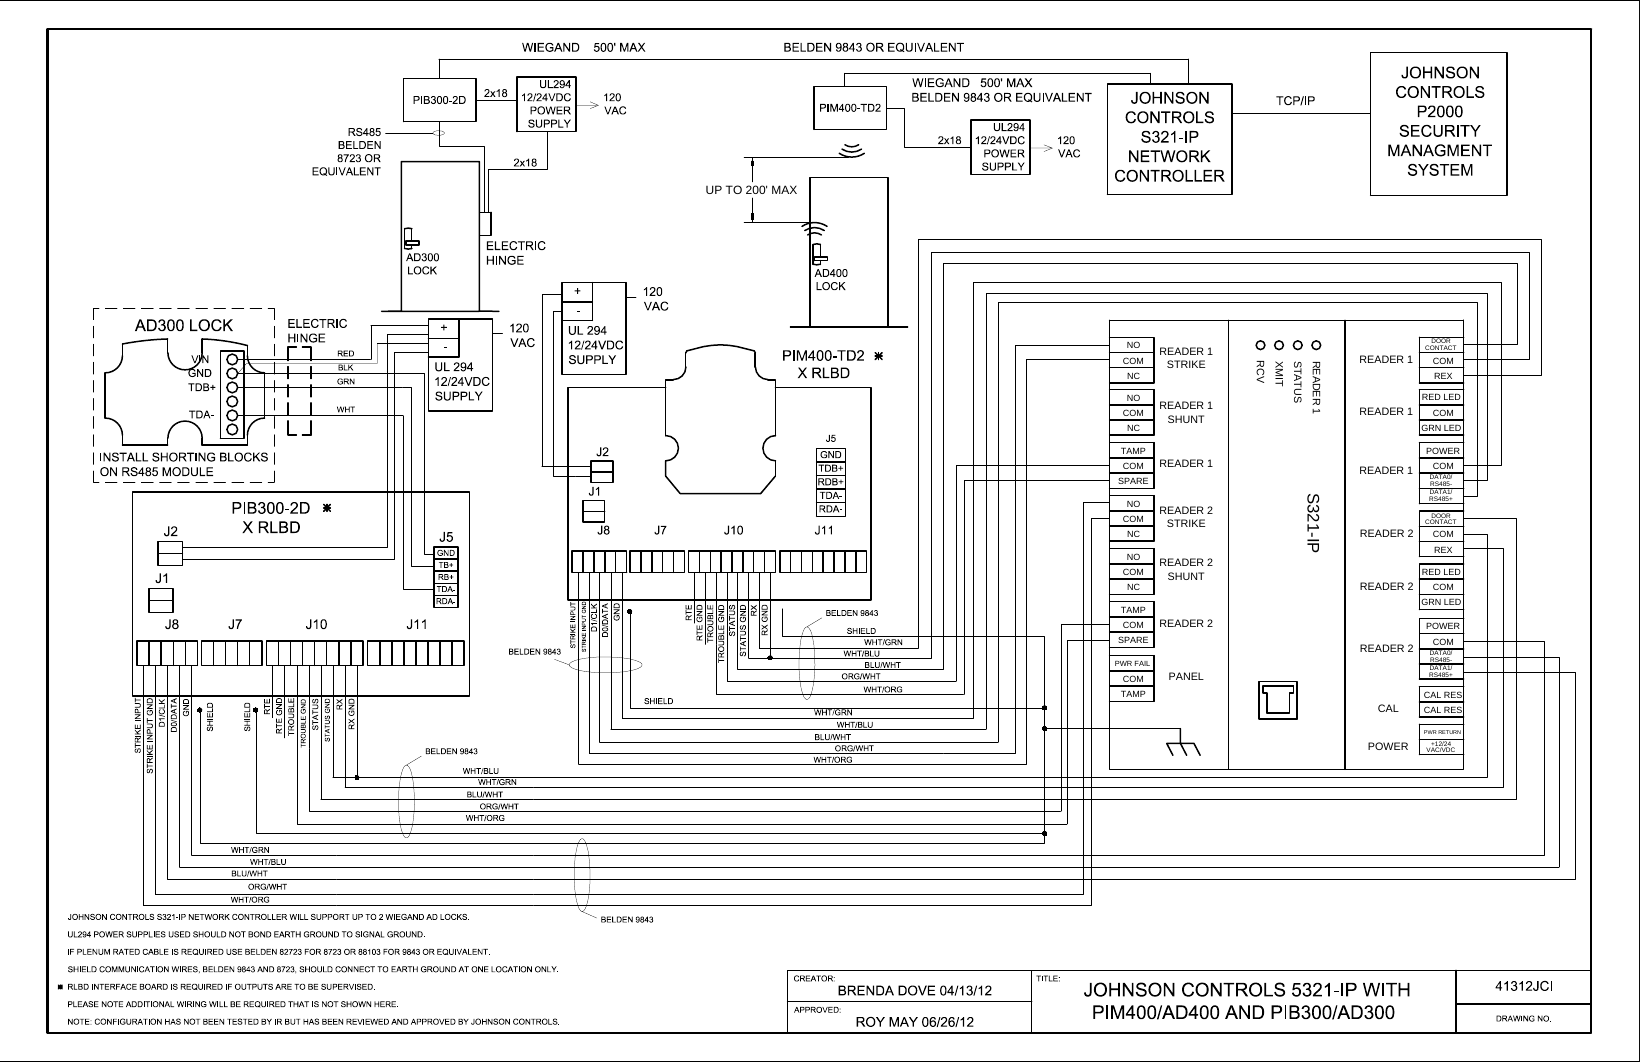 Schlage Electronics AD300 AD400 Wiring Diagram Johnson